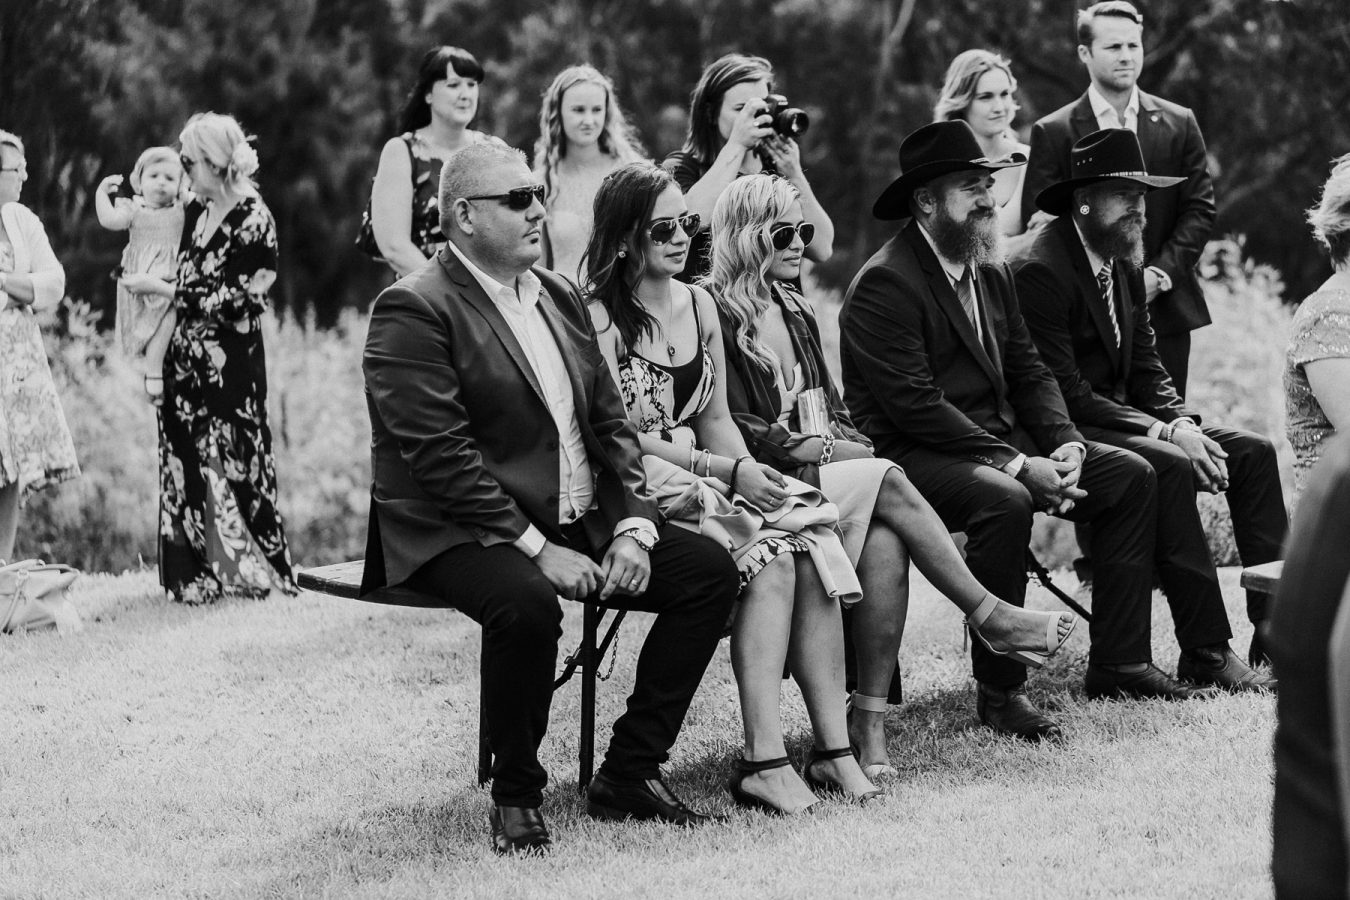 Courtney-Josh-Growwild-Bowral-southernhighlans-Wedding-47